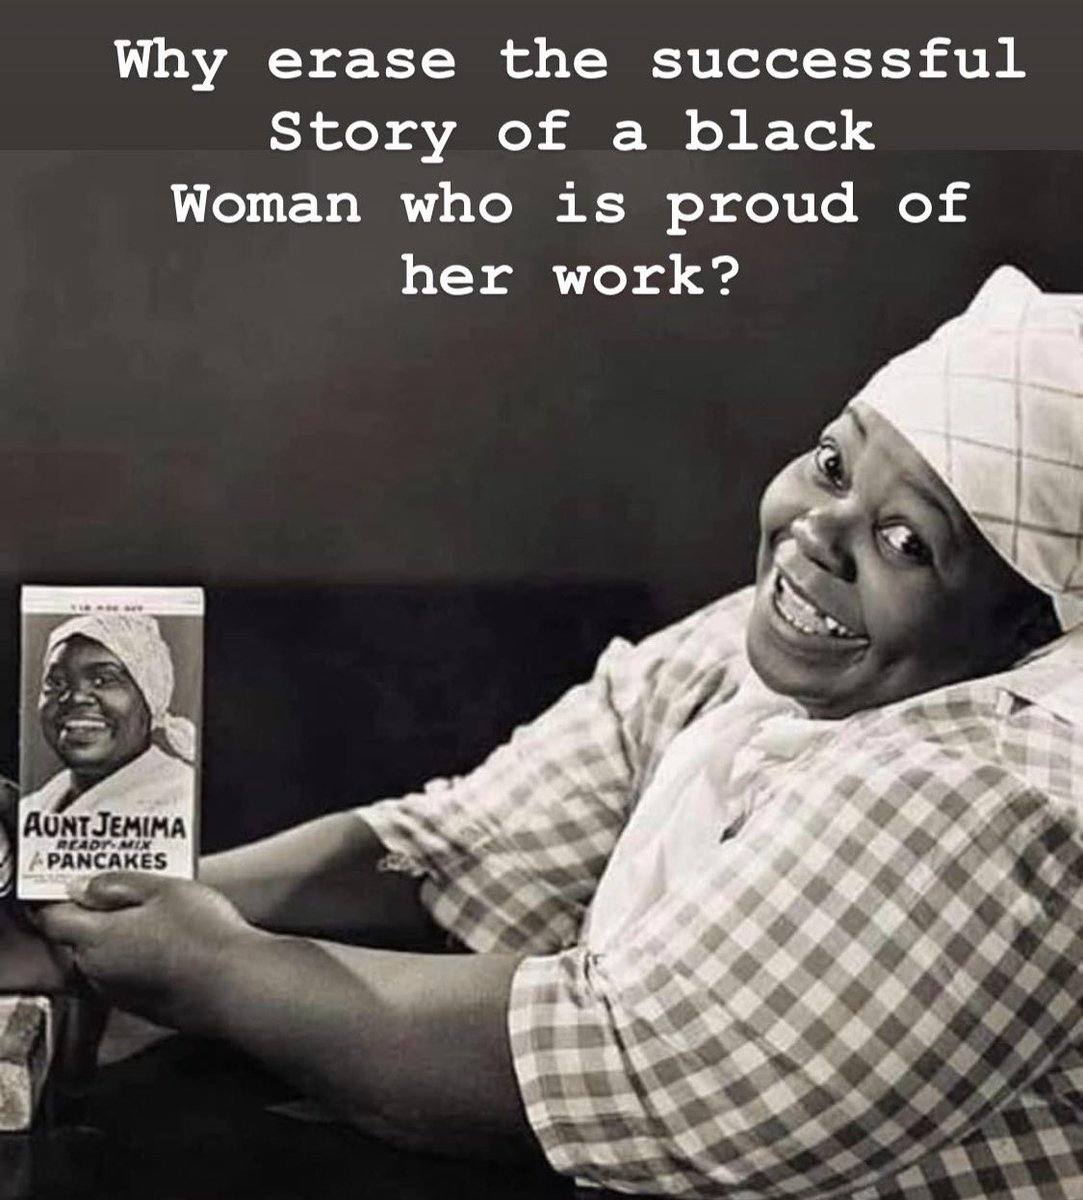 To the white people who erased black history with #AuntJemima